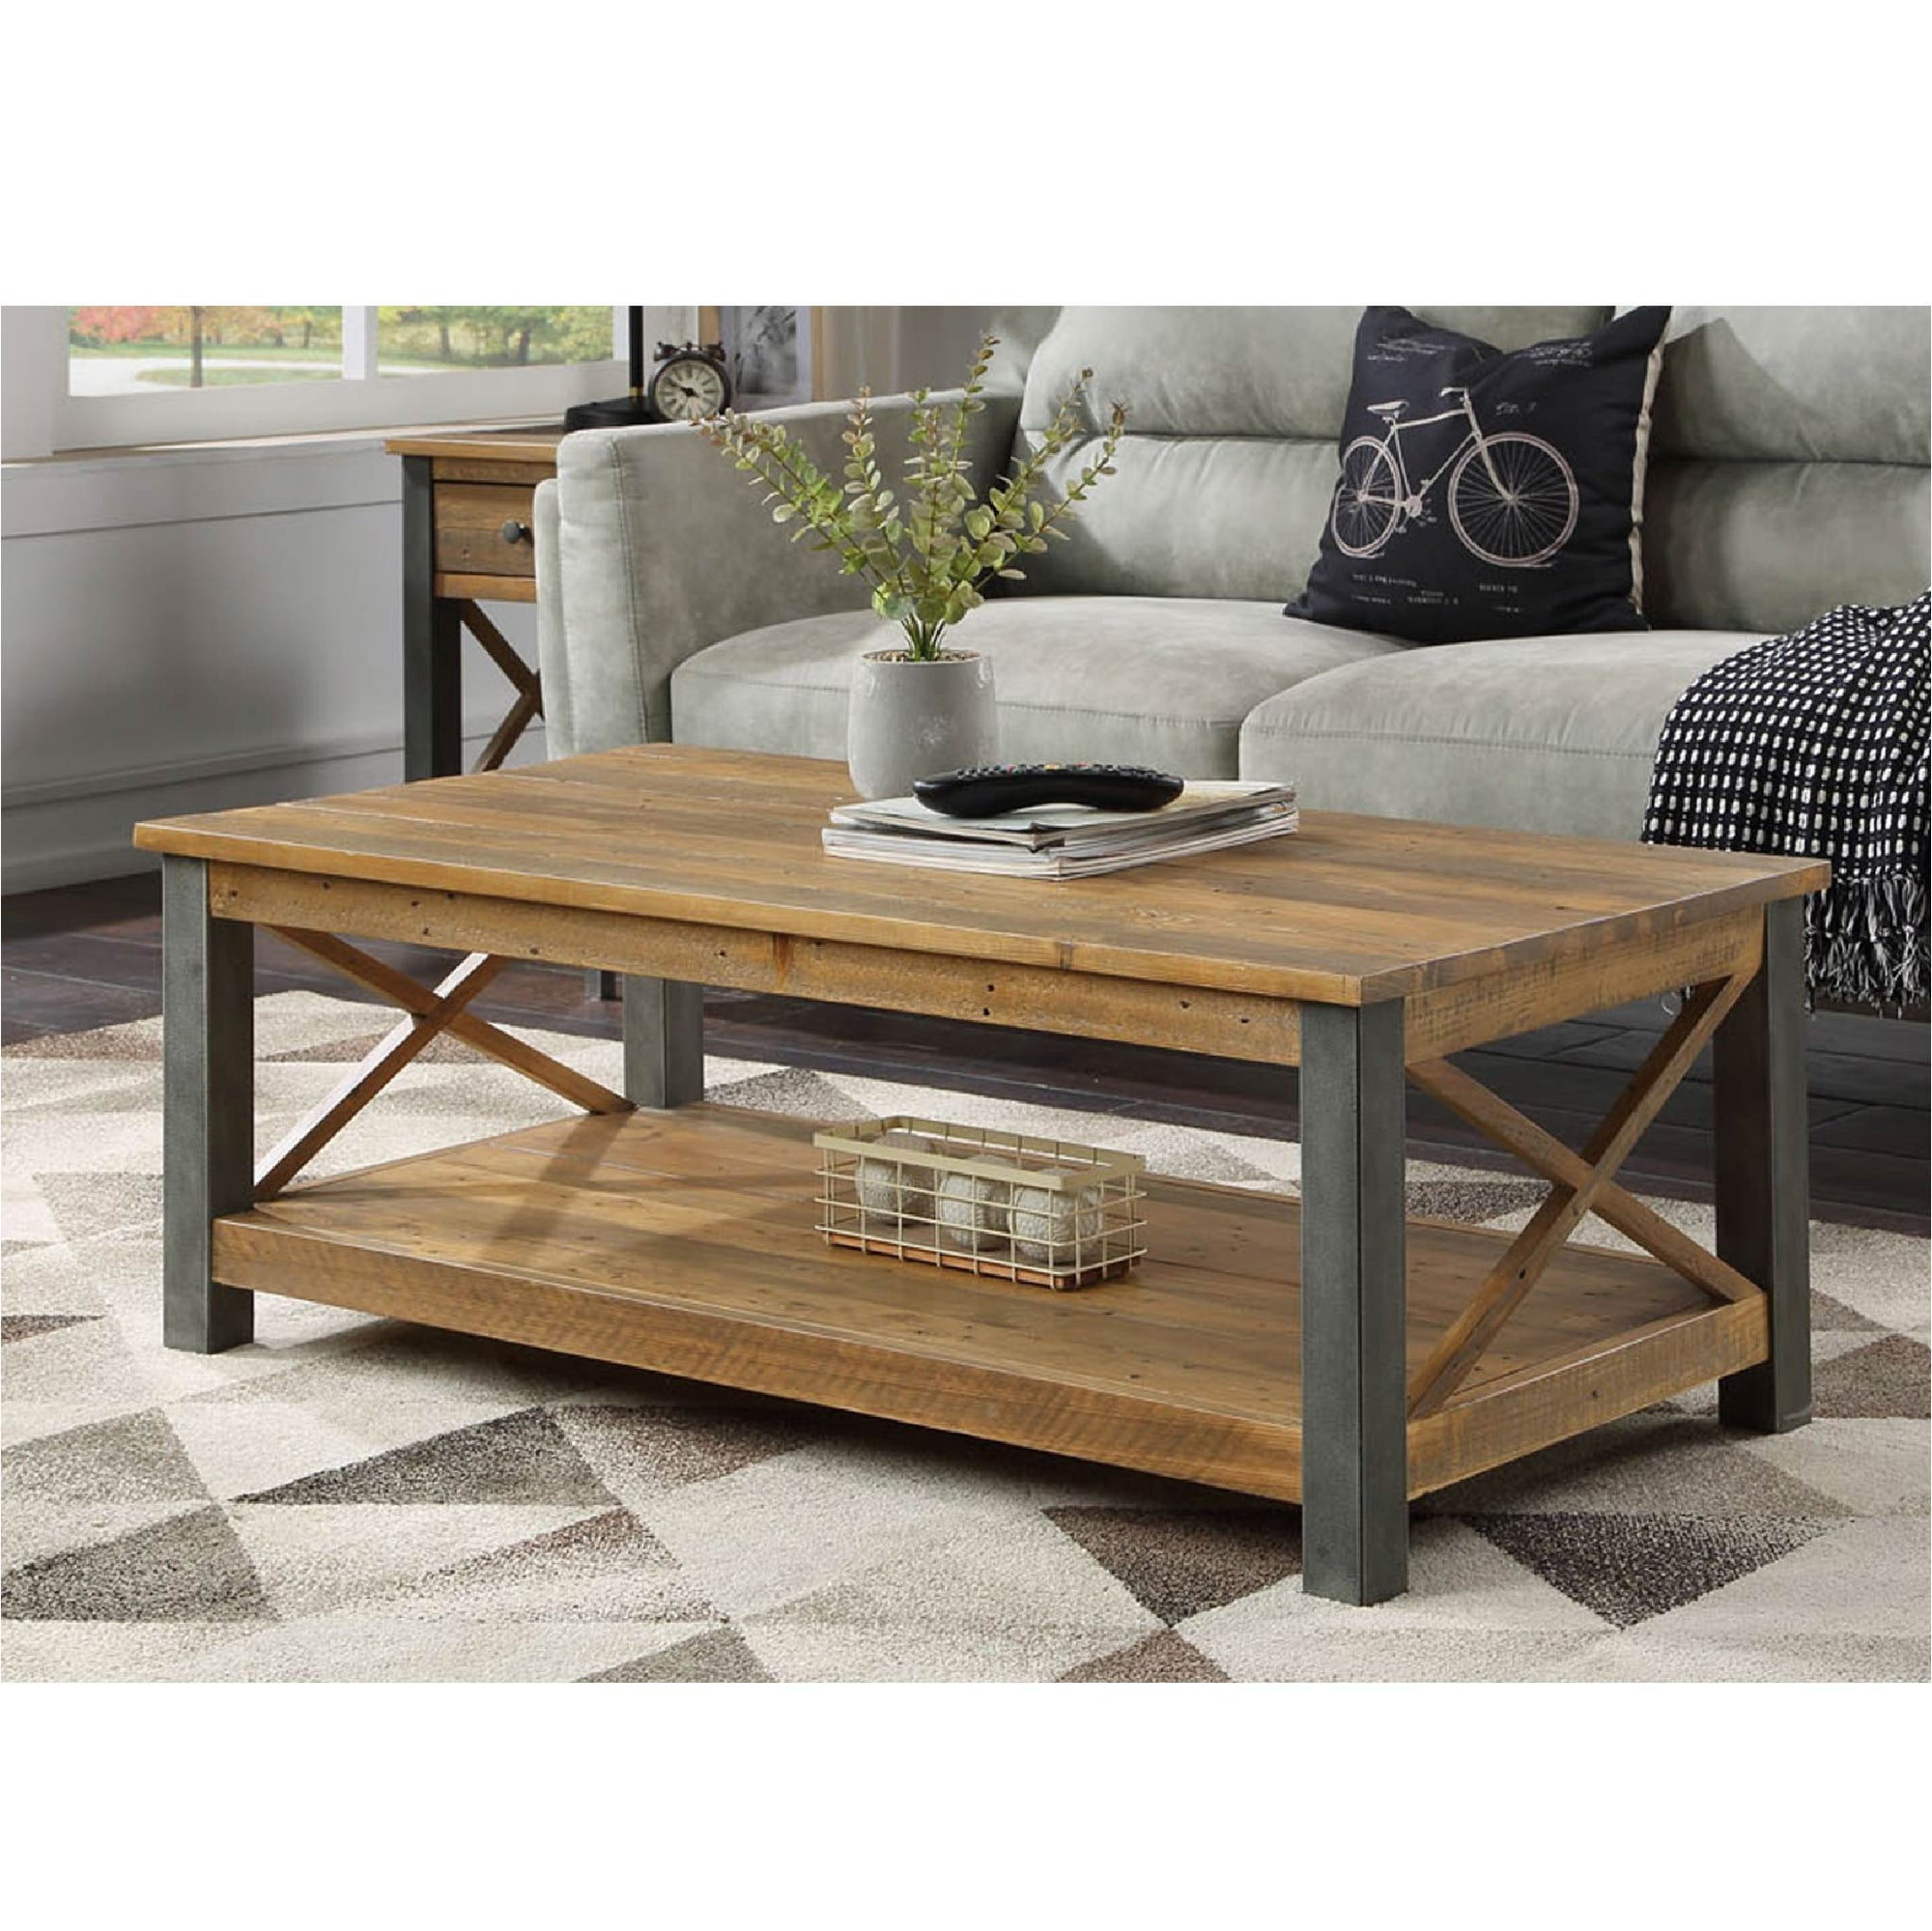 Urban Elegance Industrial Reclaimed Wood Coffee Table